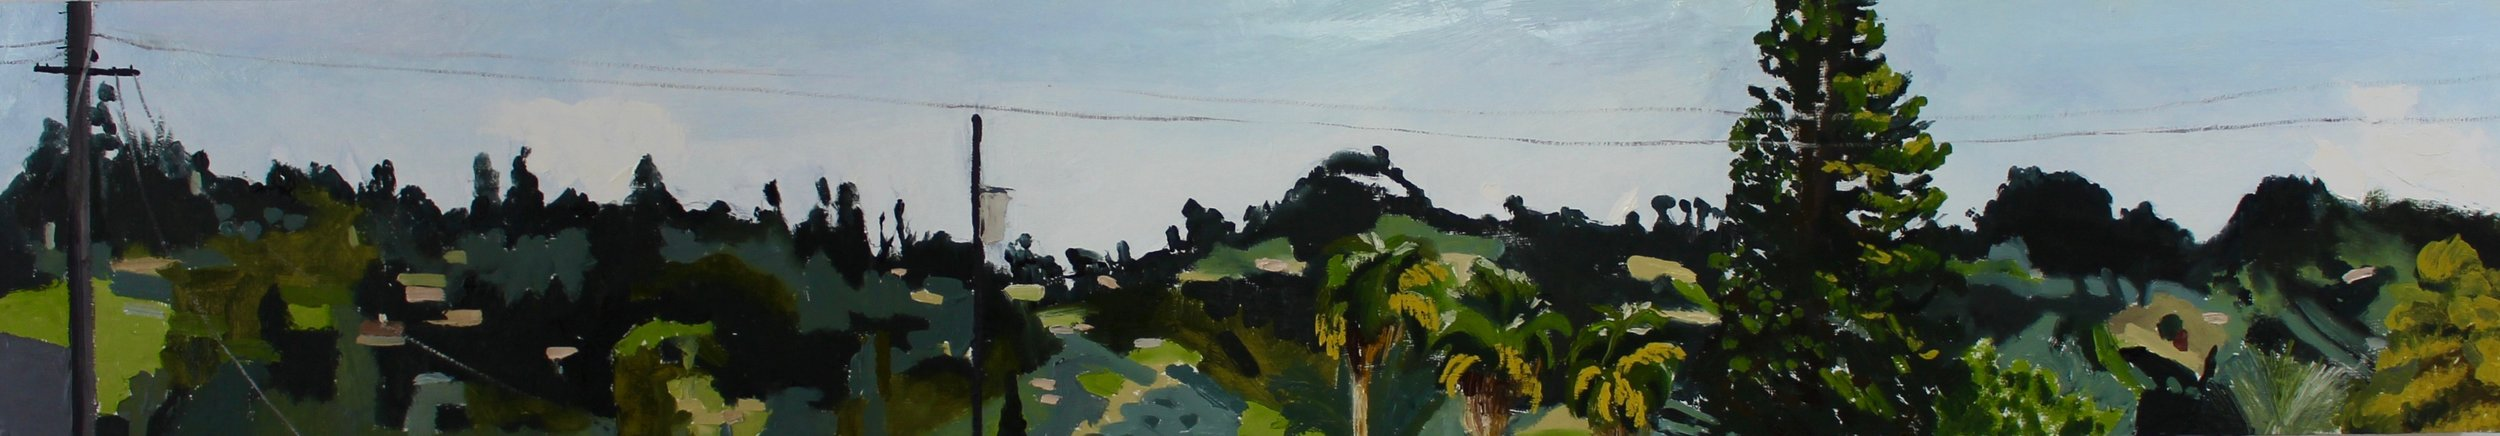 HILLS FROM THE WINDOW •  9.5 X 52 • ACRYLIC AND OIL ON PANEL •  $1,495